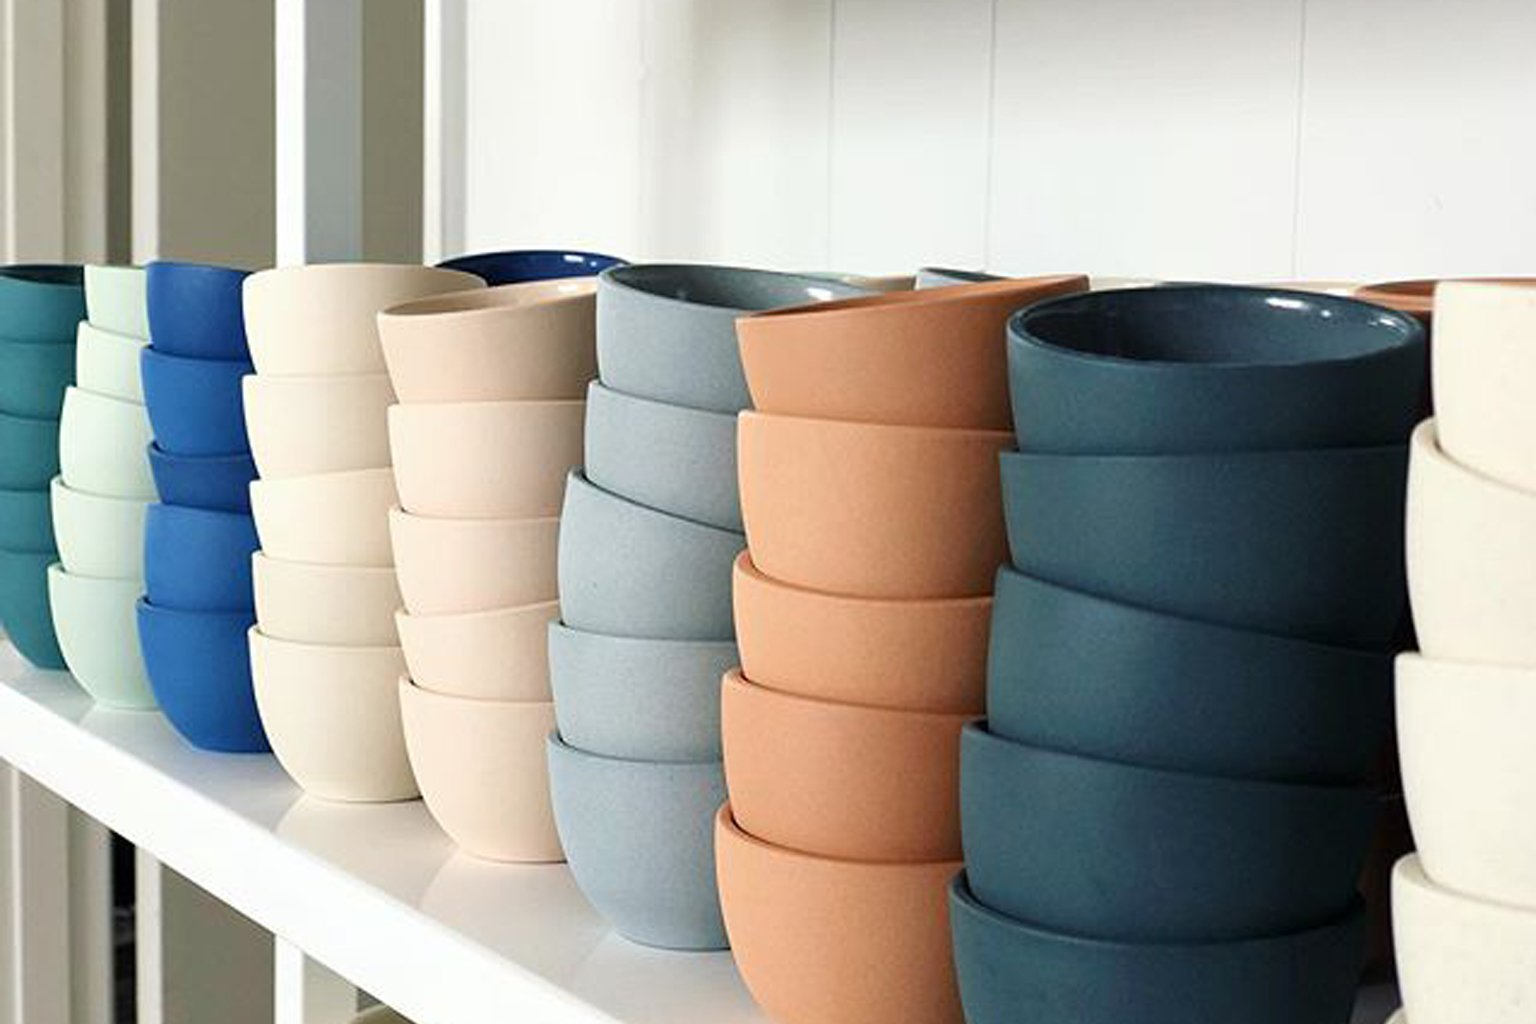 Photo 3 of 6 in 5 Indie Ceramic Brands We're Currently Crushing On